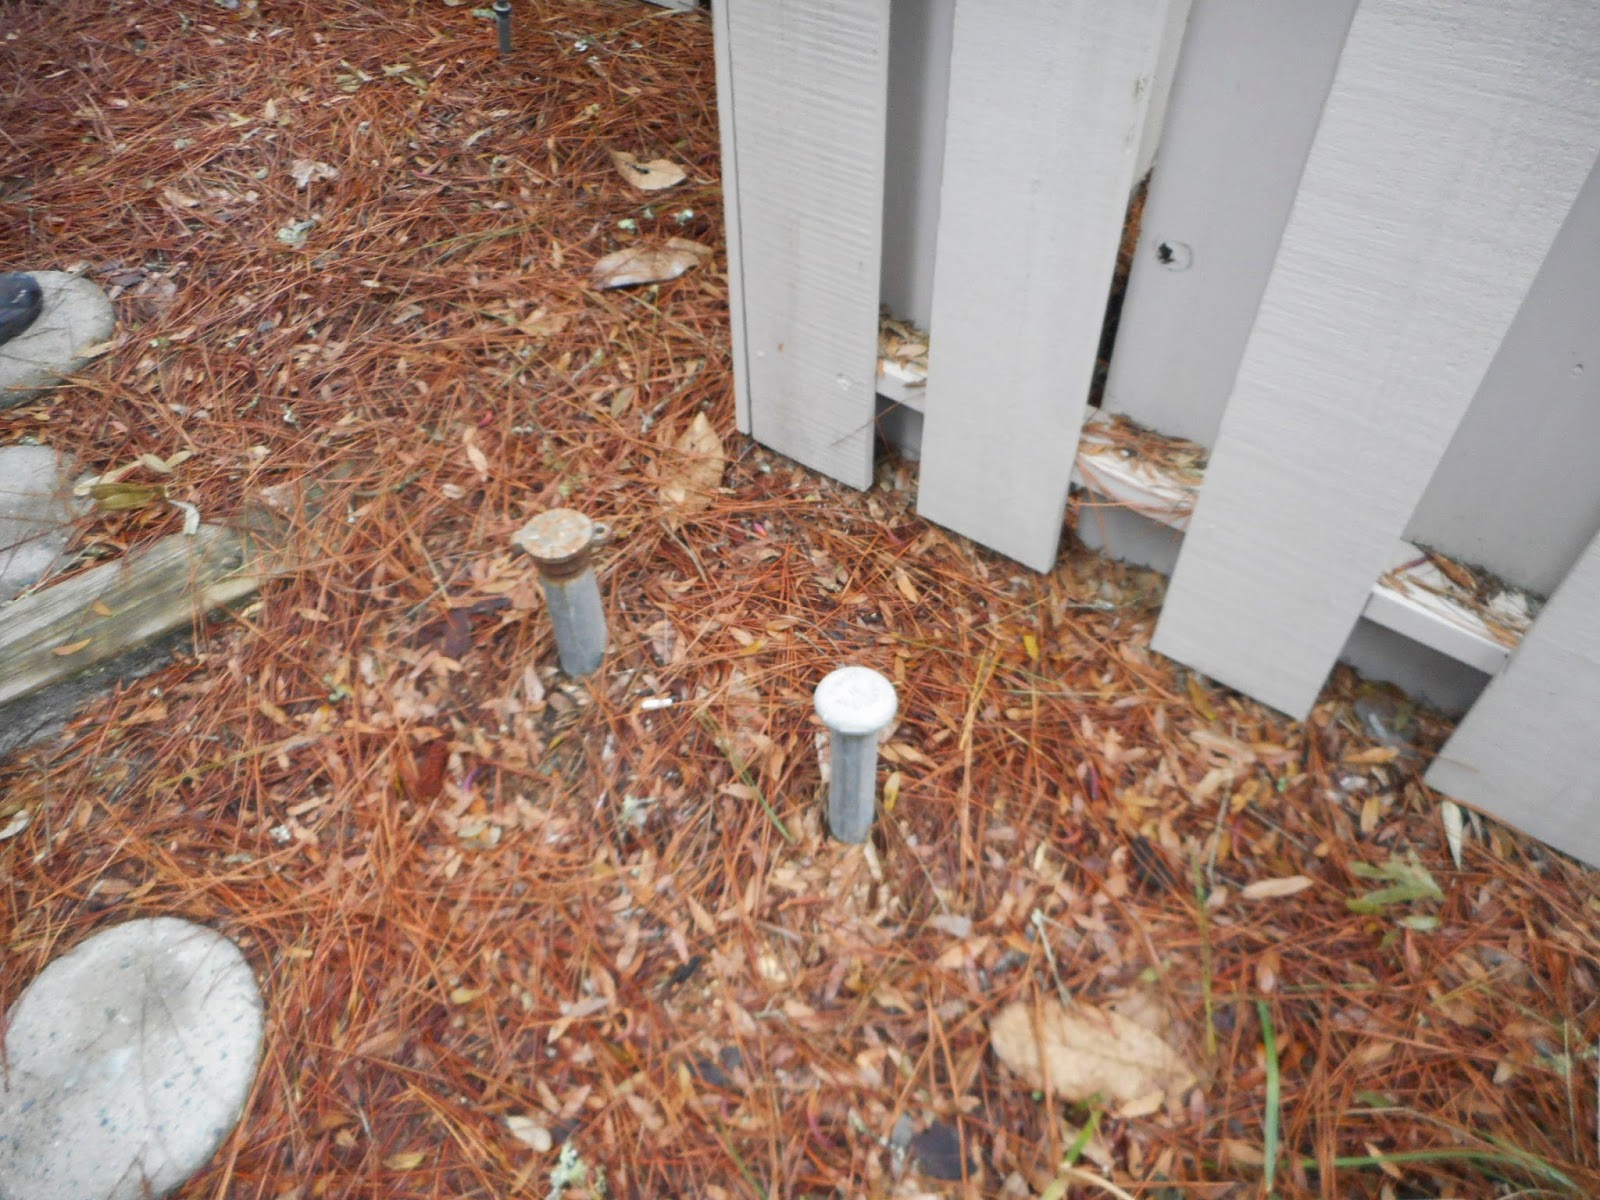 Home Inspection, buried fuel oil tank, Hilton Head, SC